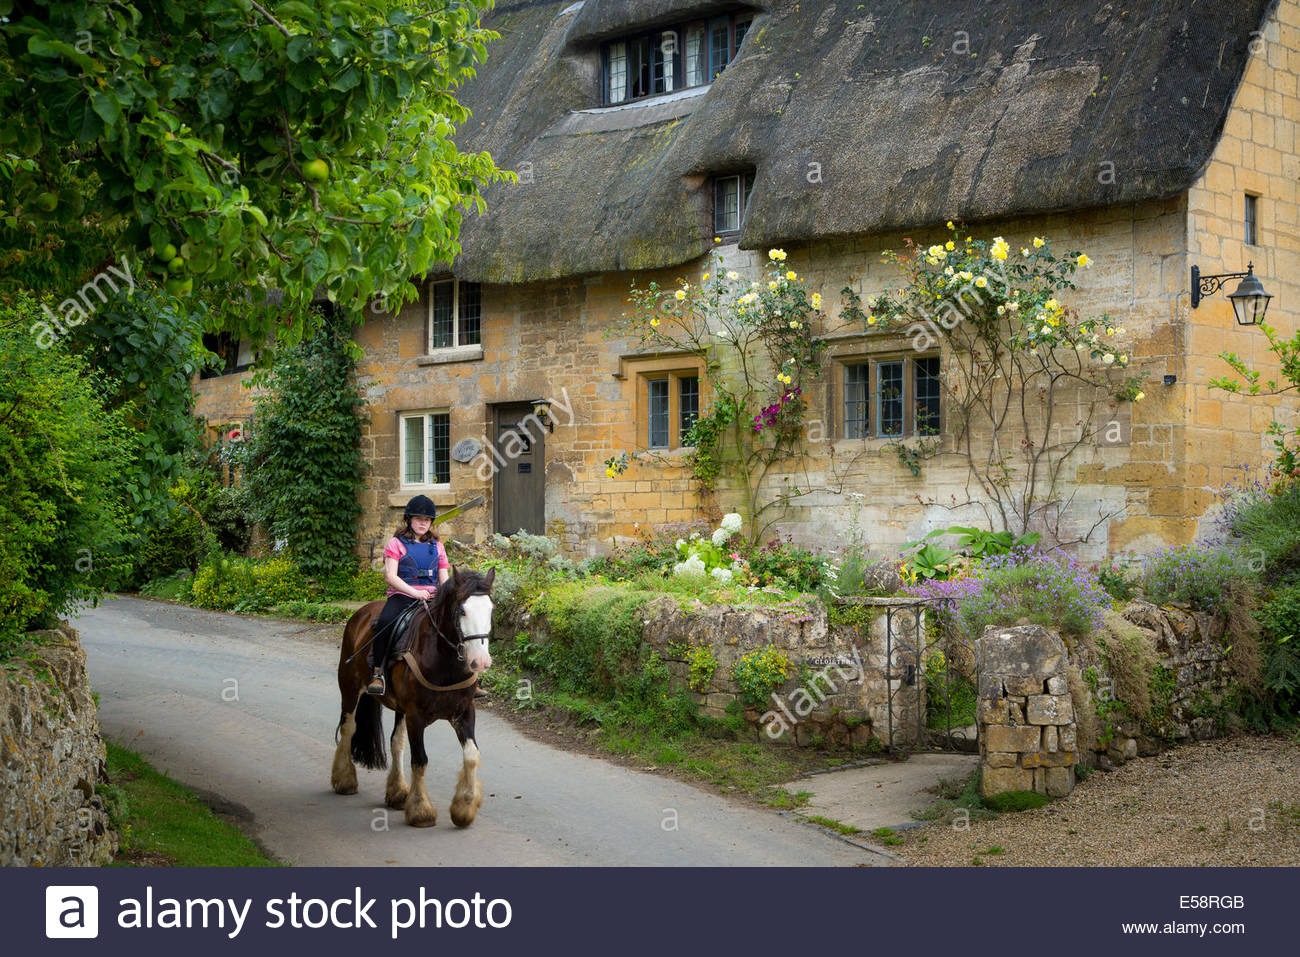 Girl On Horseback Below Thatched Roof Cottage Stanton The Cotswolds Gloucestershire England